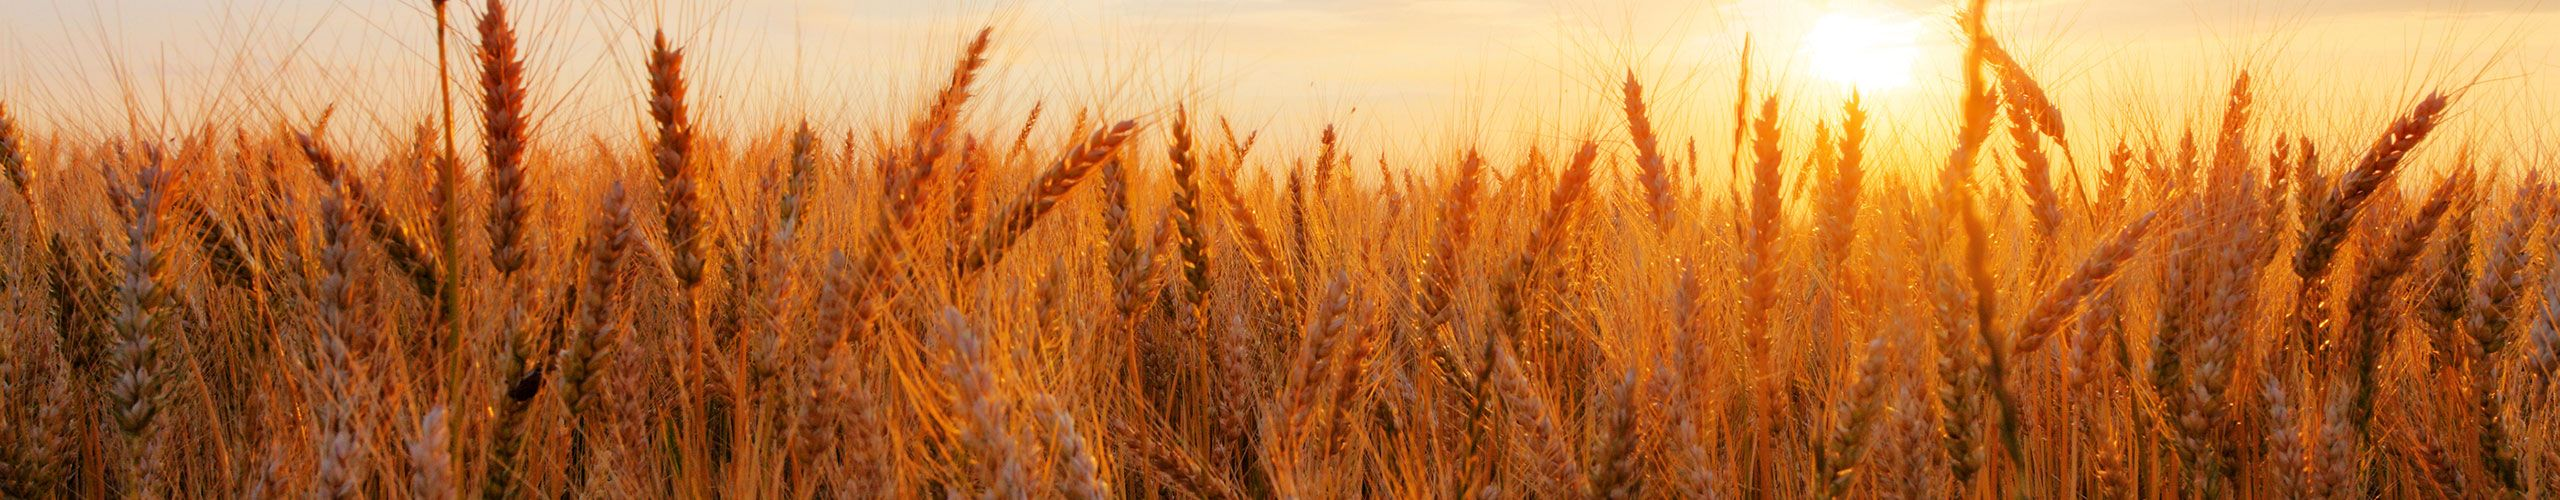 bigstock-Wheat-Field-Over-Sunset-47579836